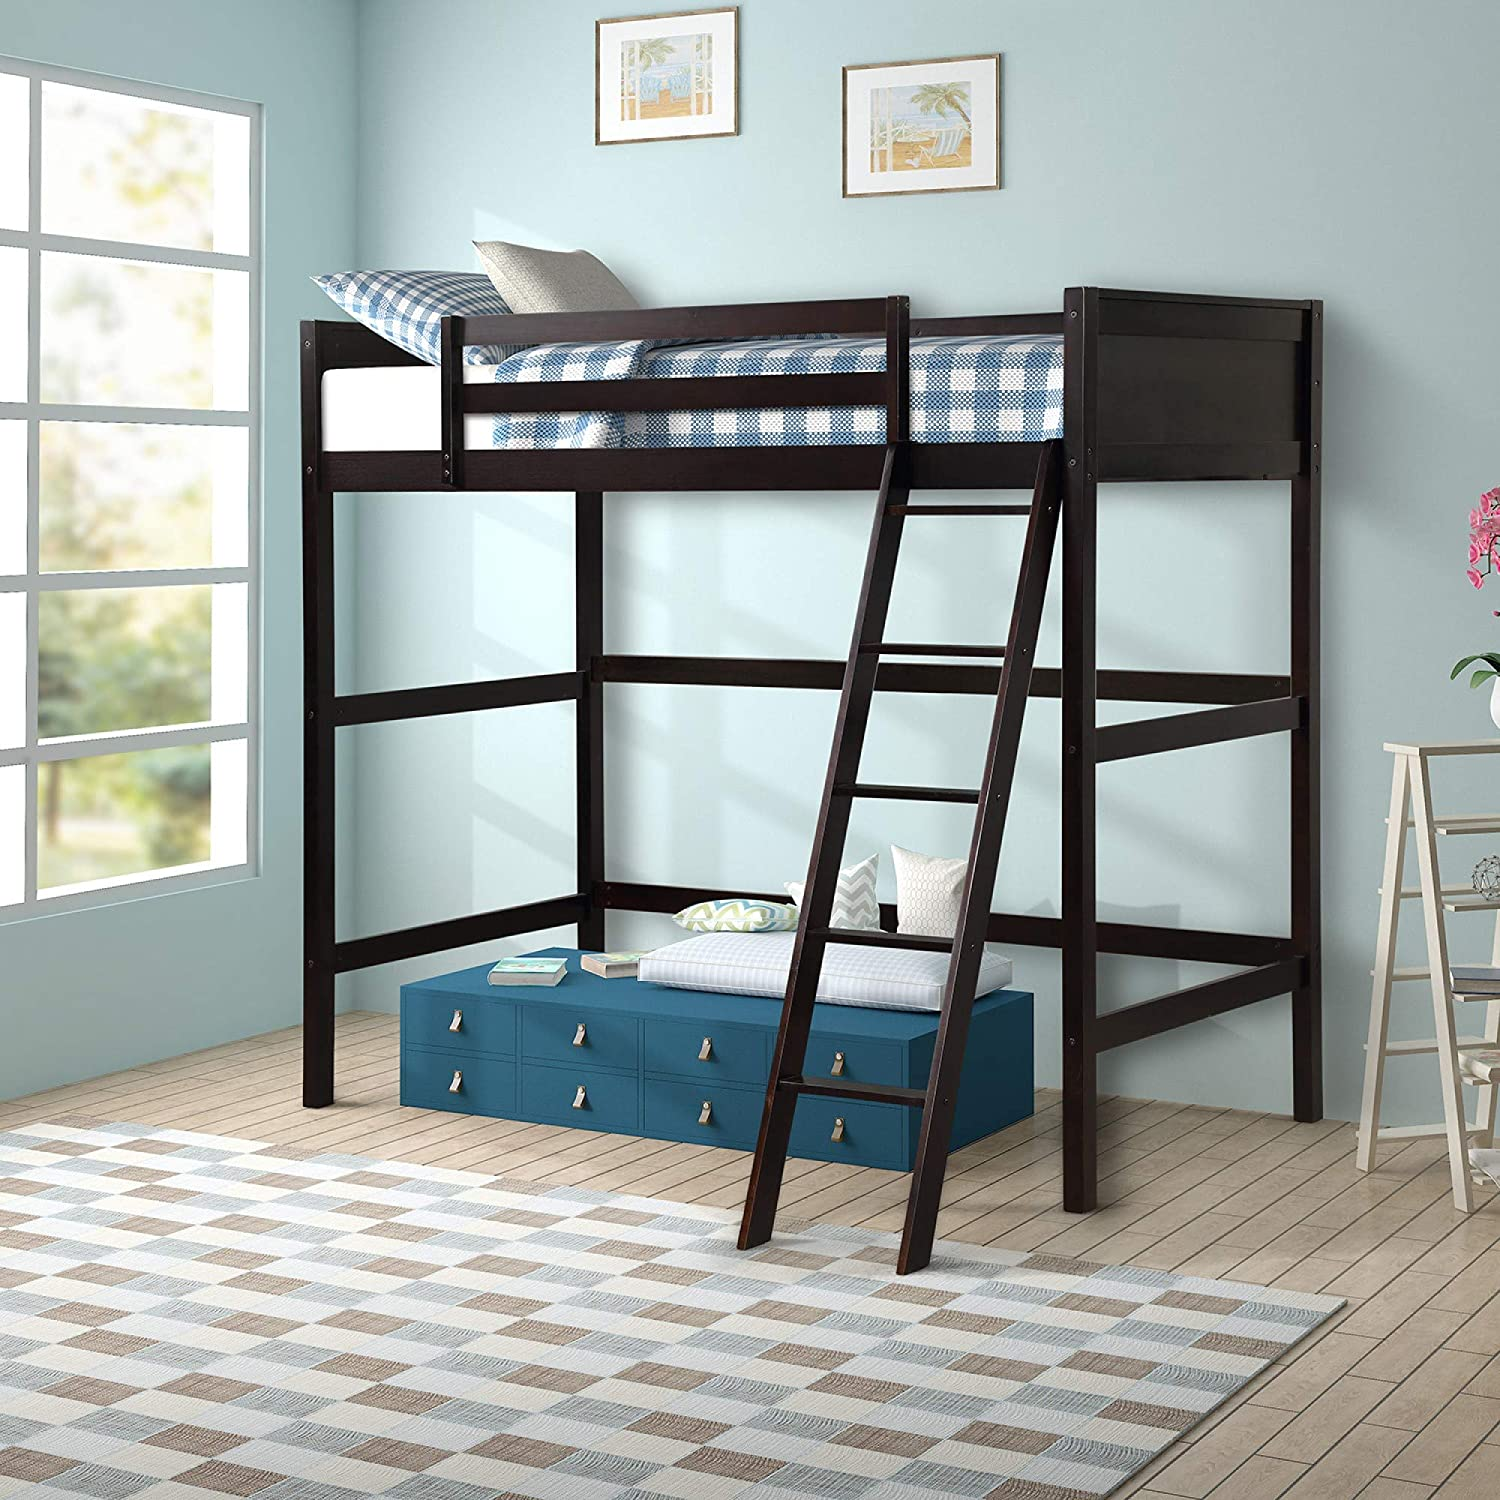 DERCASS High Side Angled Ladder Solid Wood Loft Bed Panel Style Loft Bed with Guard Rail, No Box Spring Needed (Espresso)